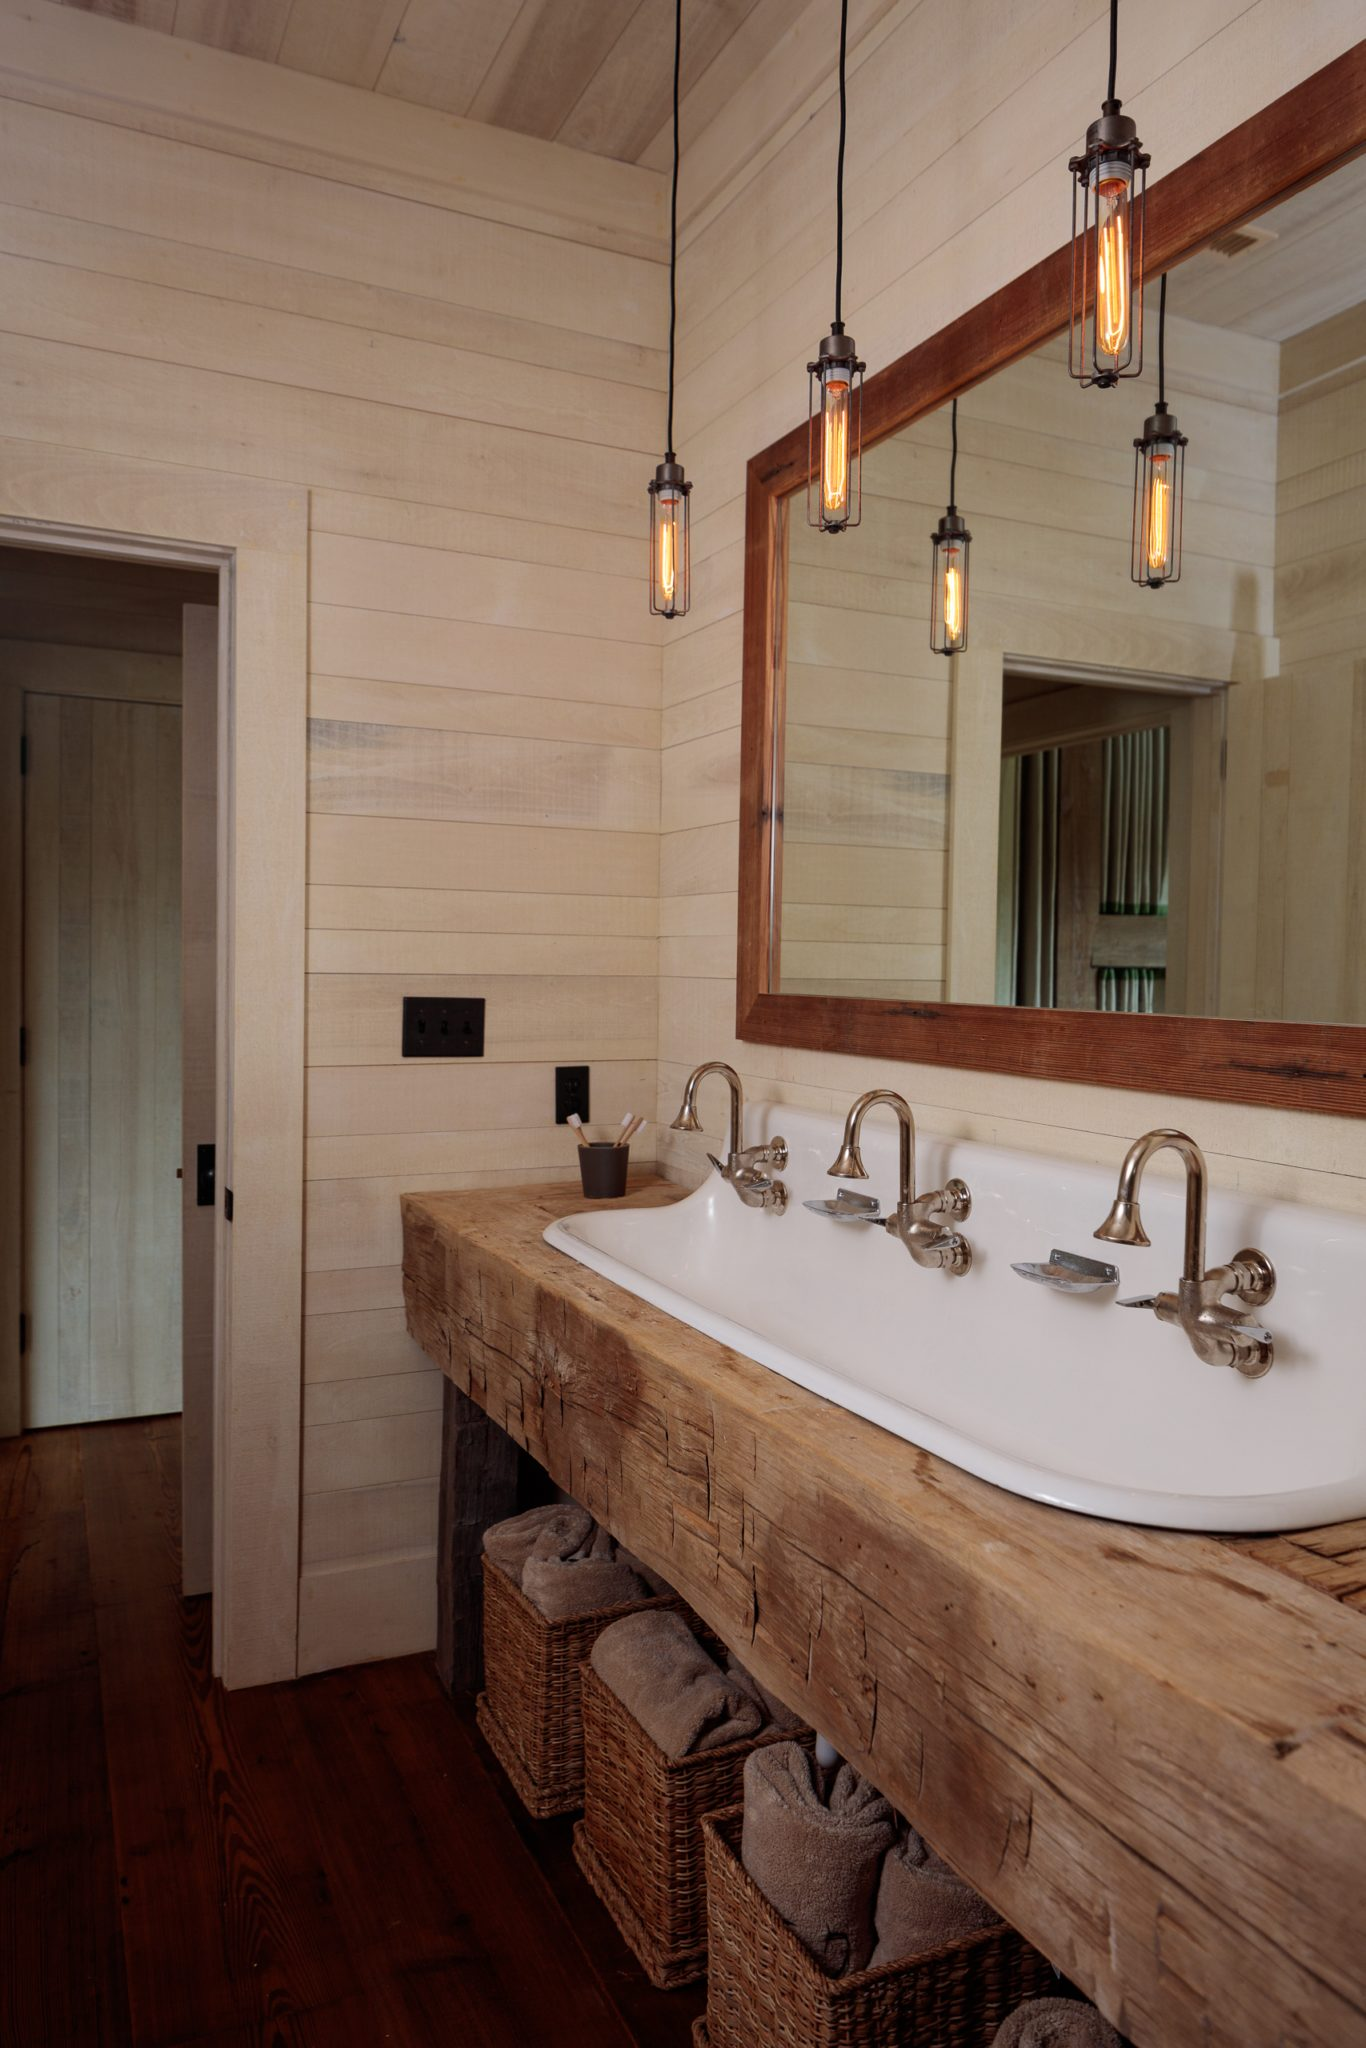 12 Rustic Bathroom Ideas - Chairish Blog